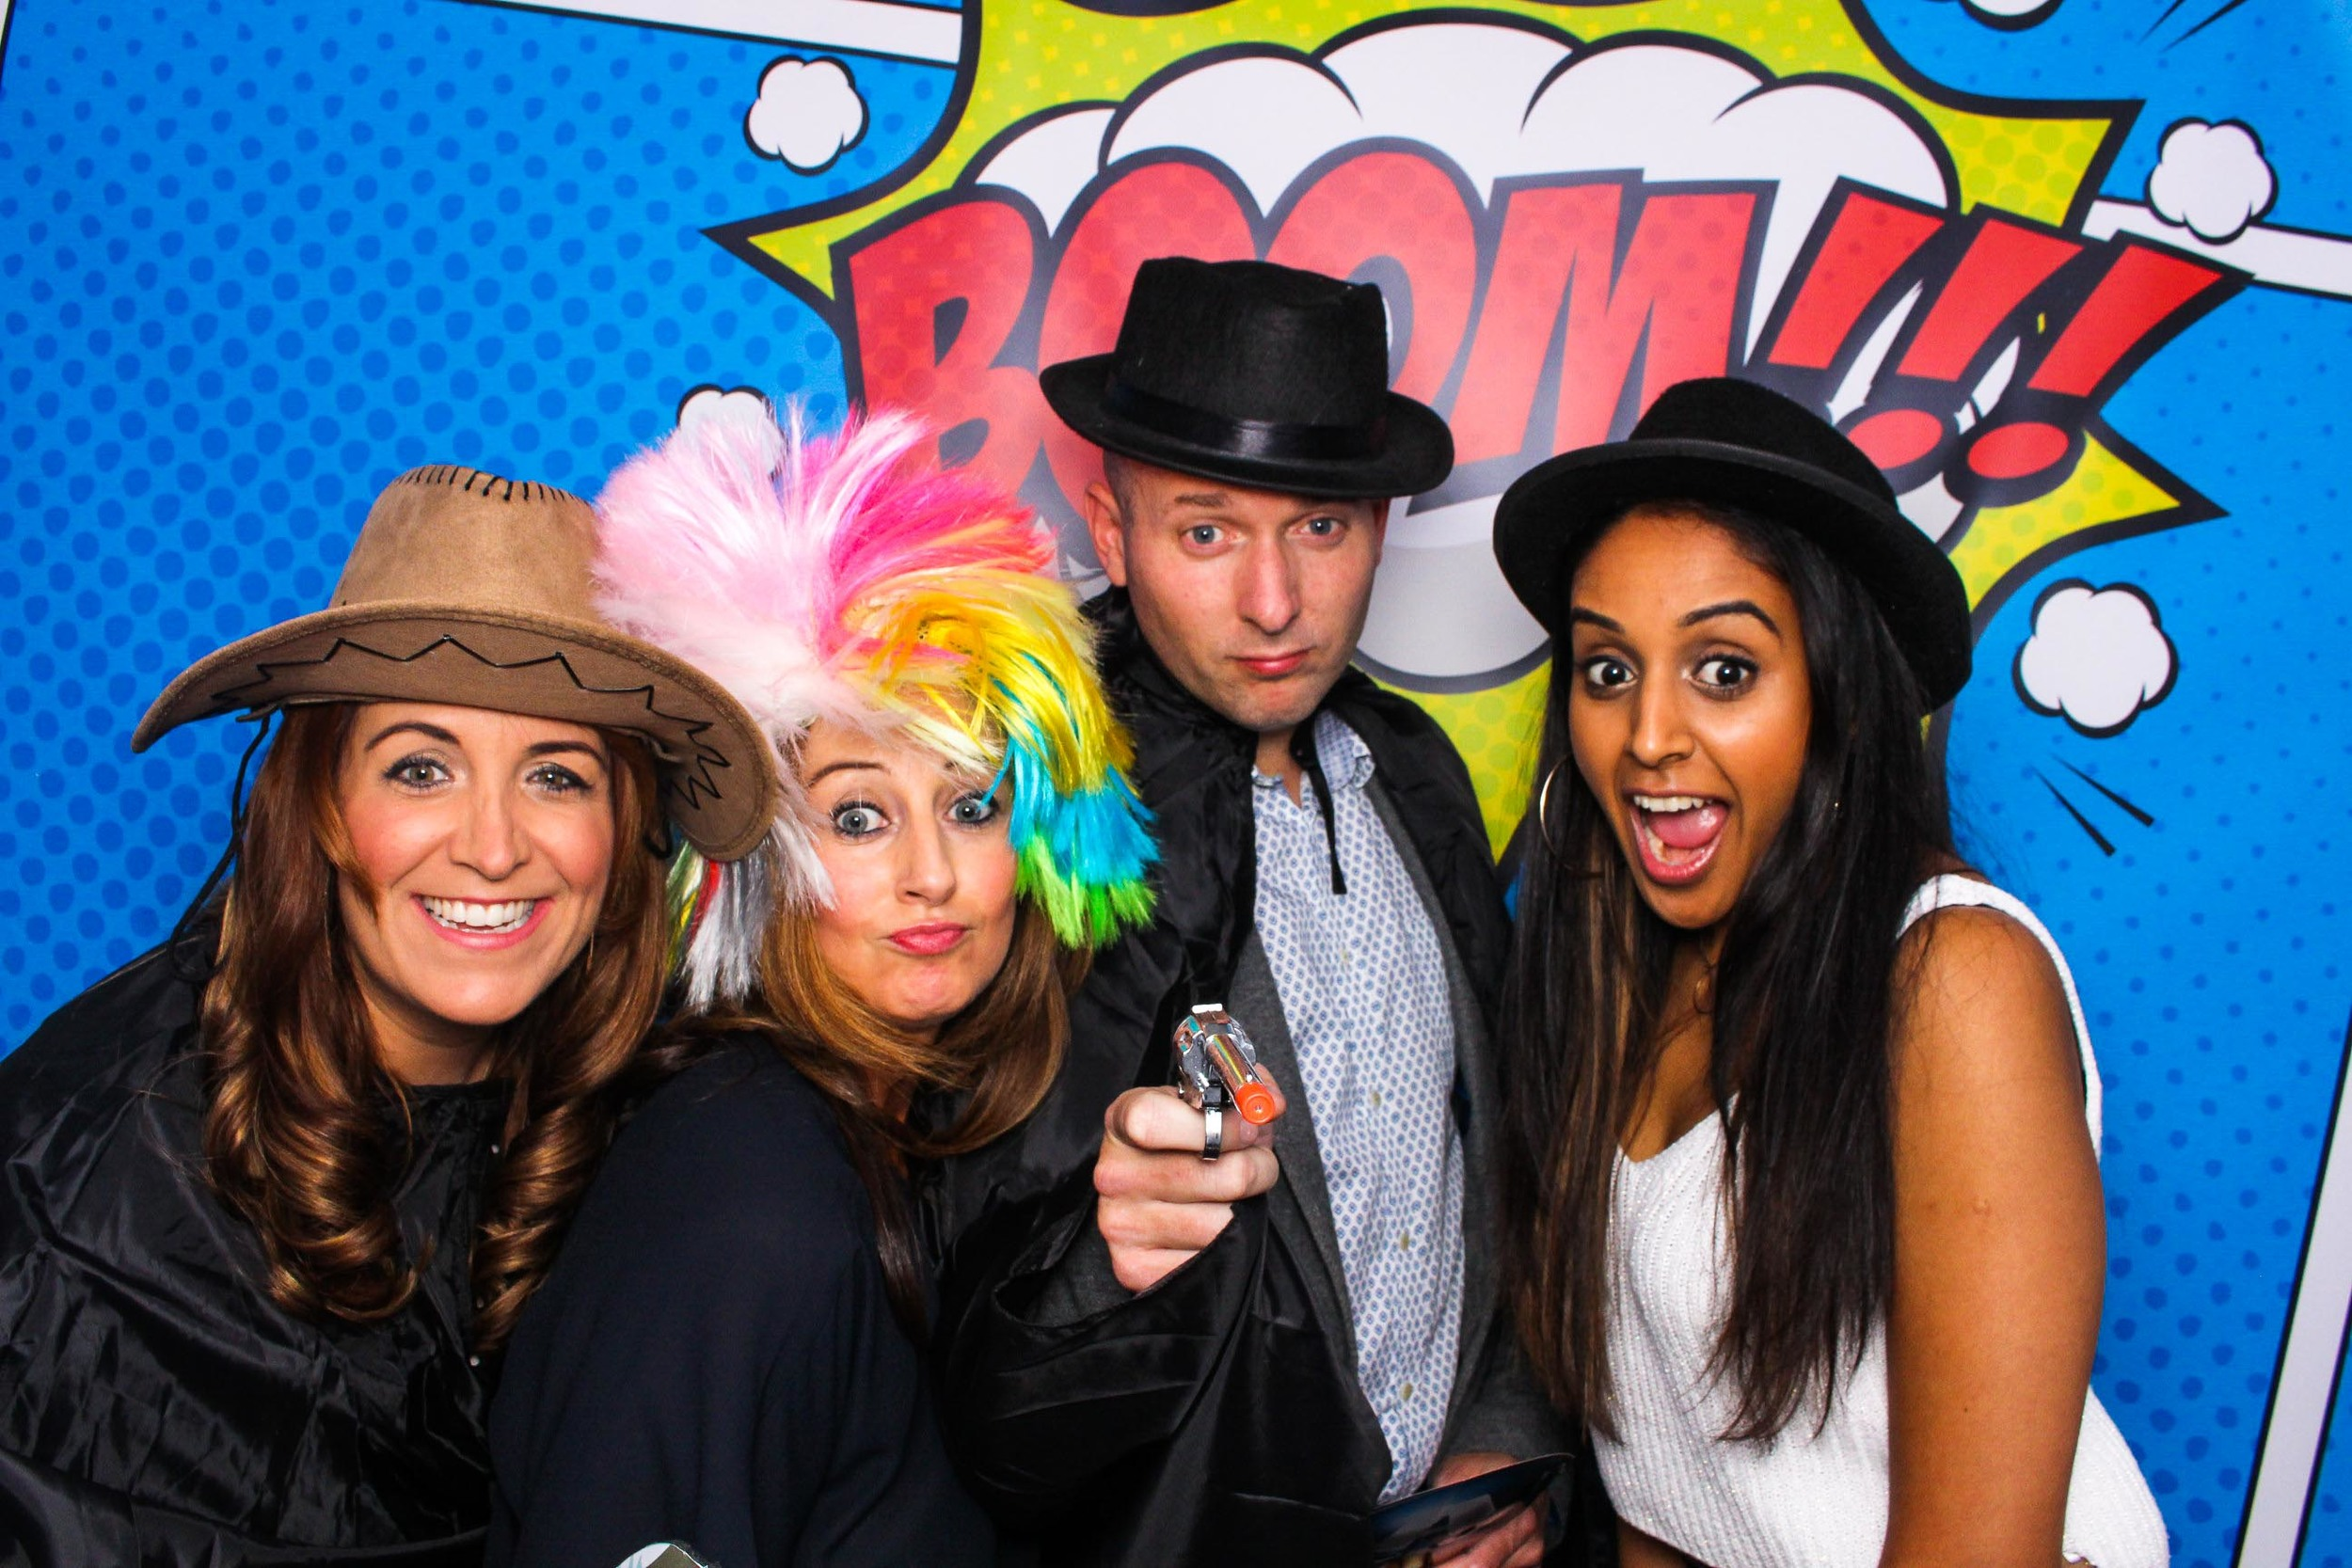 Fotoauto Photo Booth Hire - Shop Direct-262.jpg